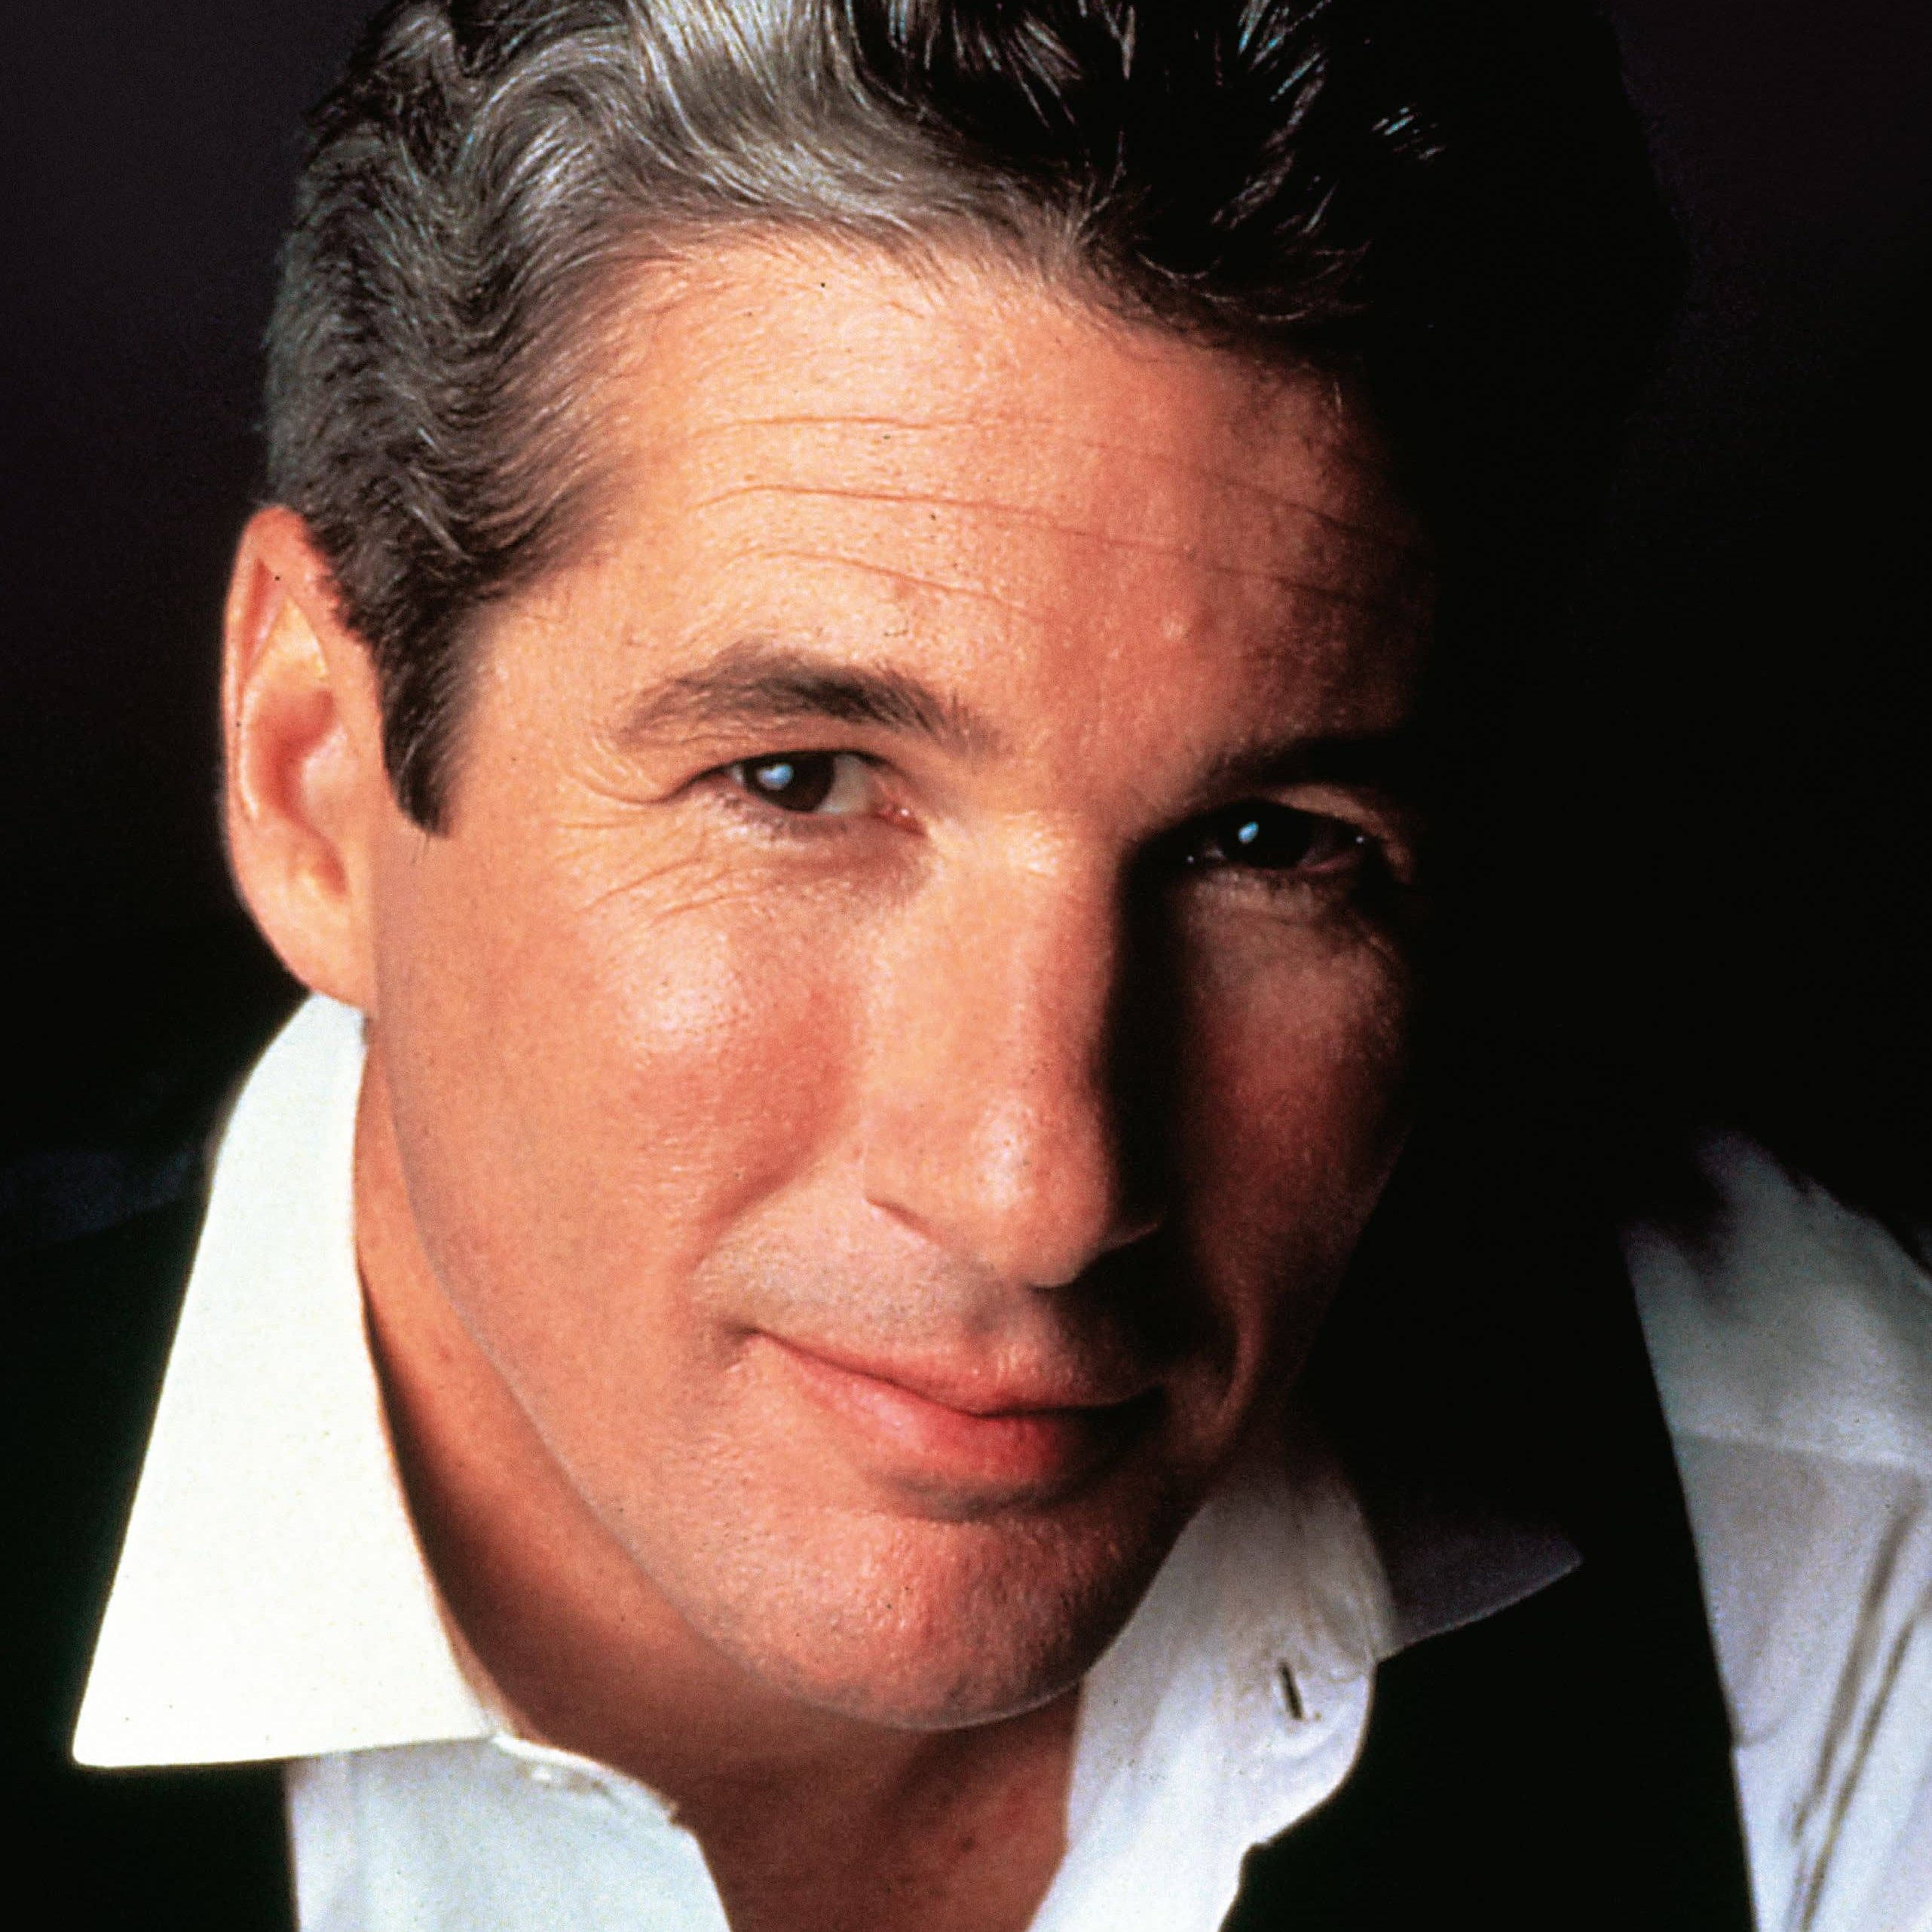 Richard Gere My Life In Pictures scaled e1601645176495 20 Things You Didn't Know About Richard Gere